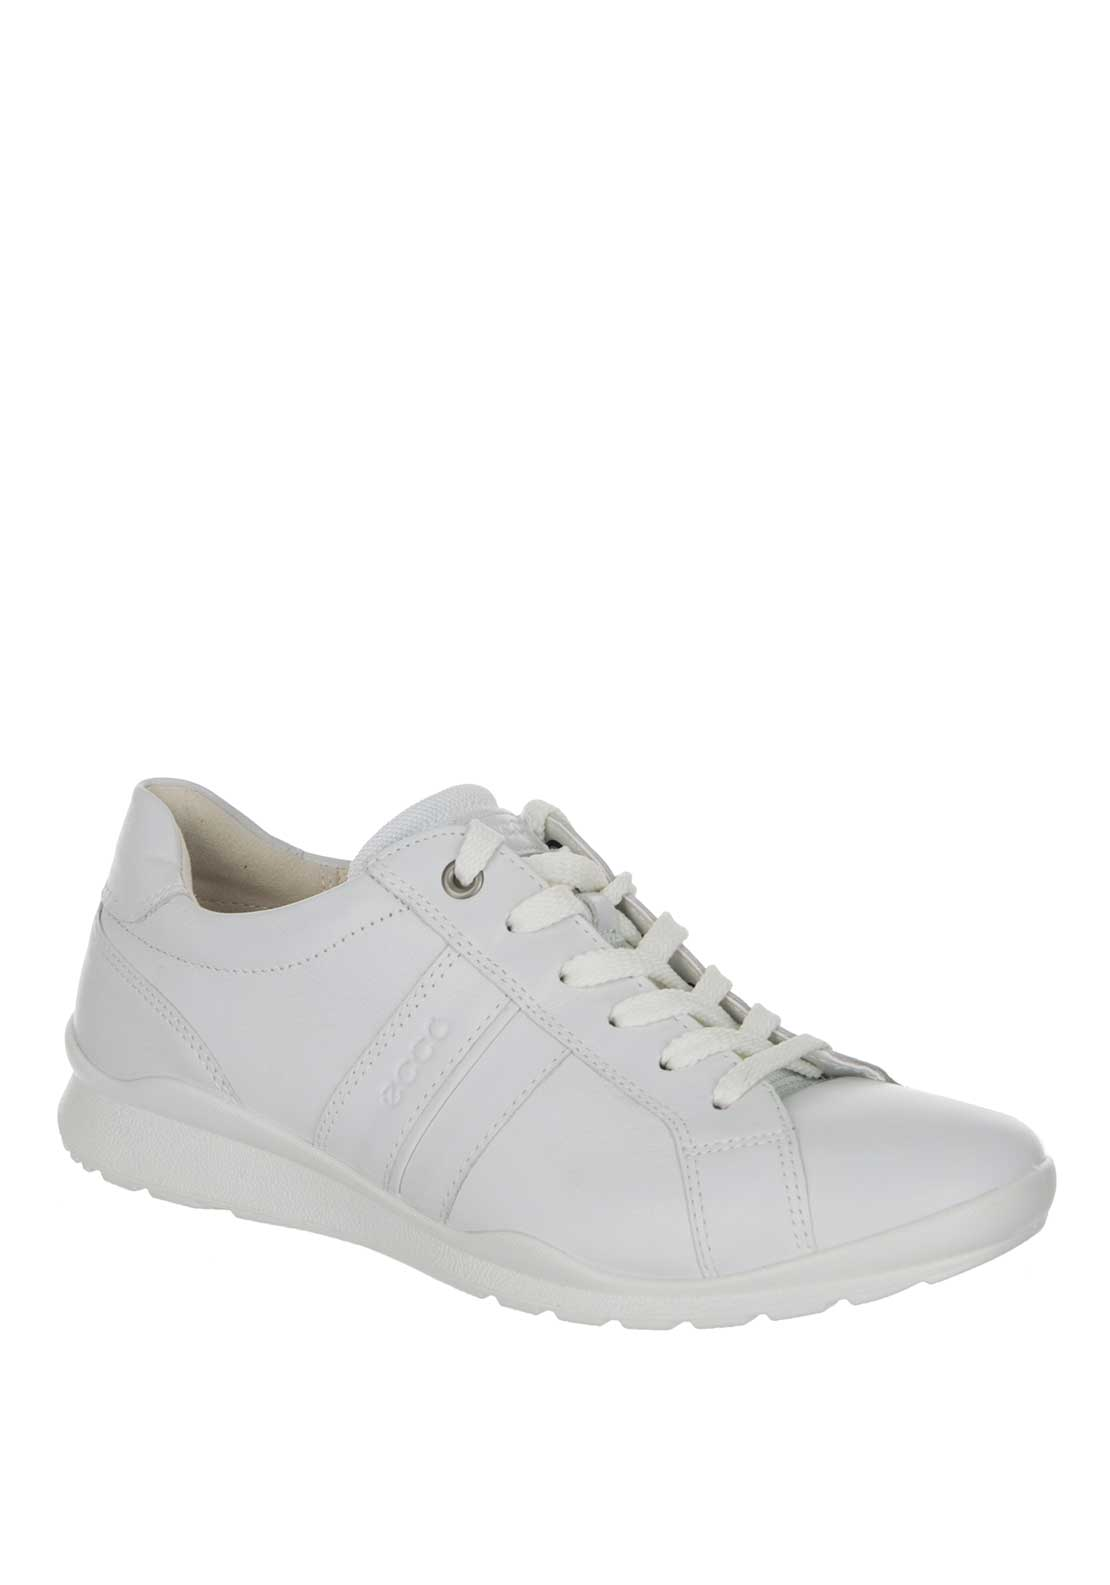 Ecco Women's Leather Comfort Trainer, White